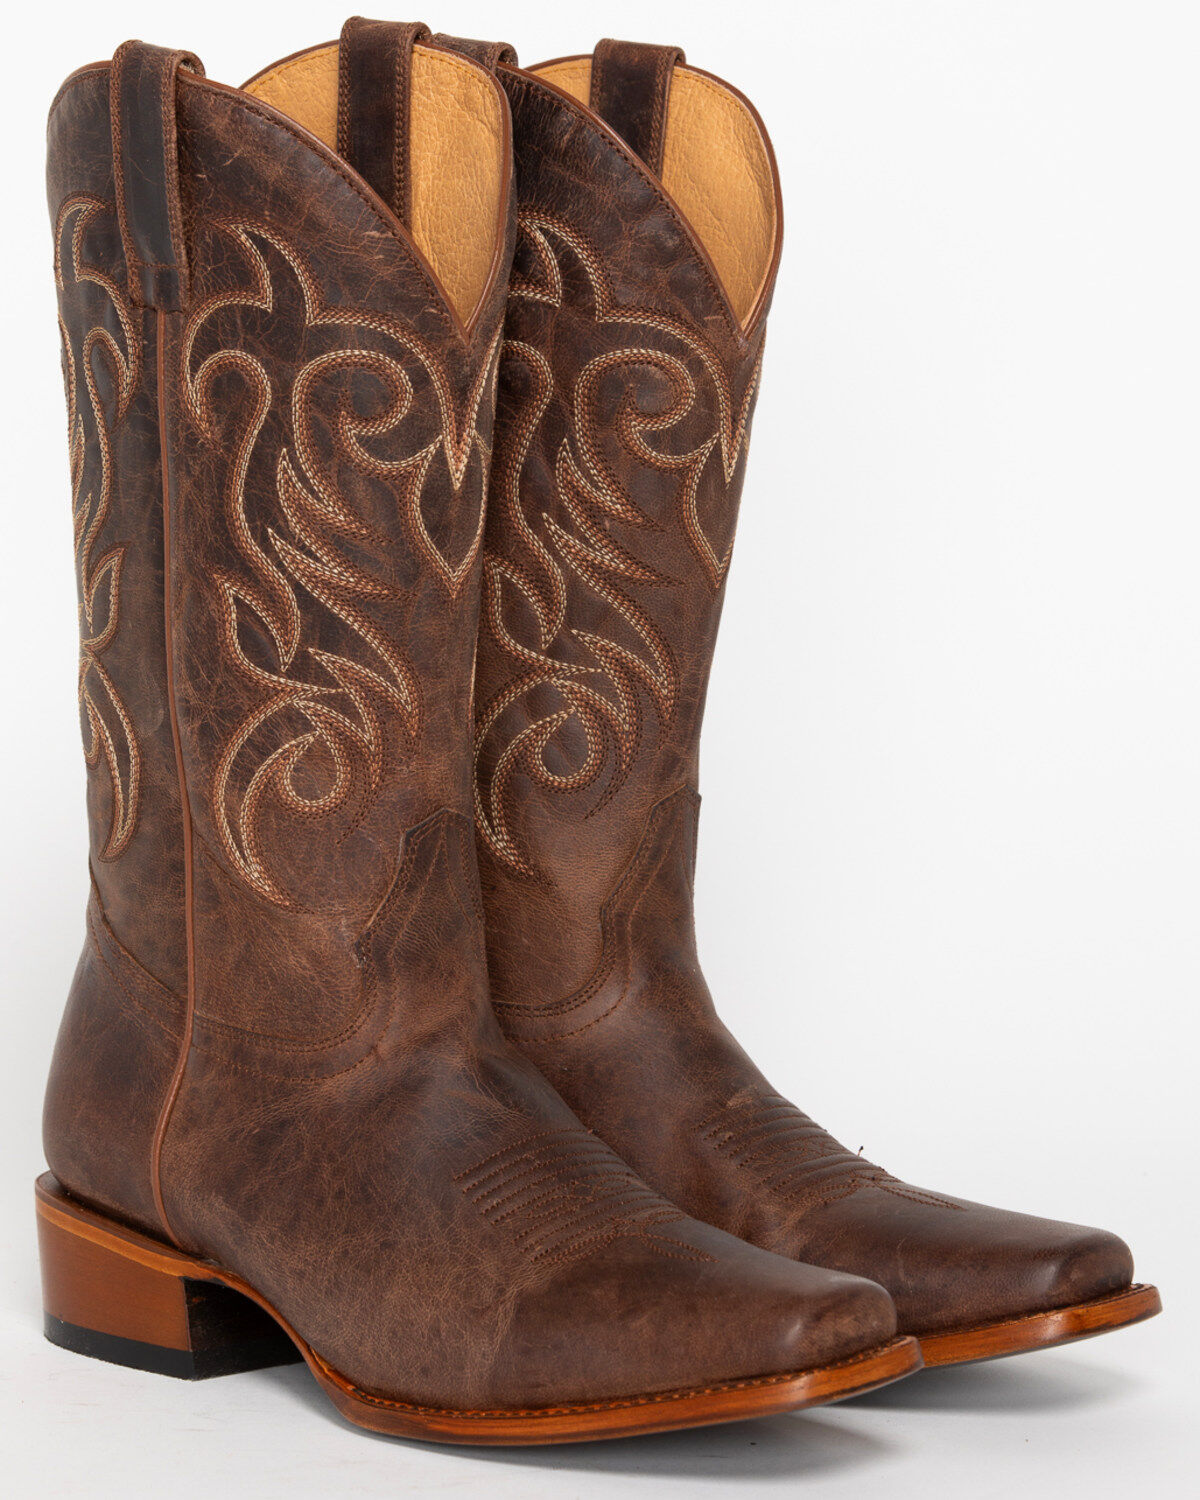 Shyanne Boots \u0026 Jeans , Boot Barn